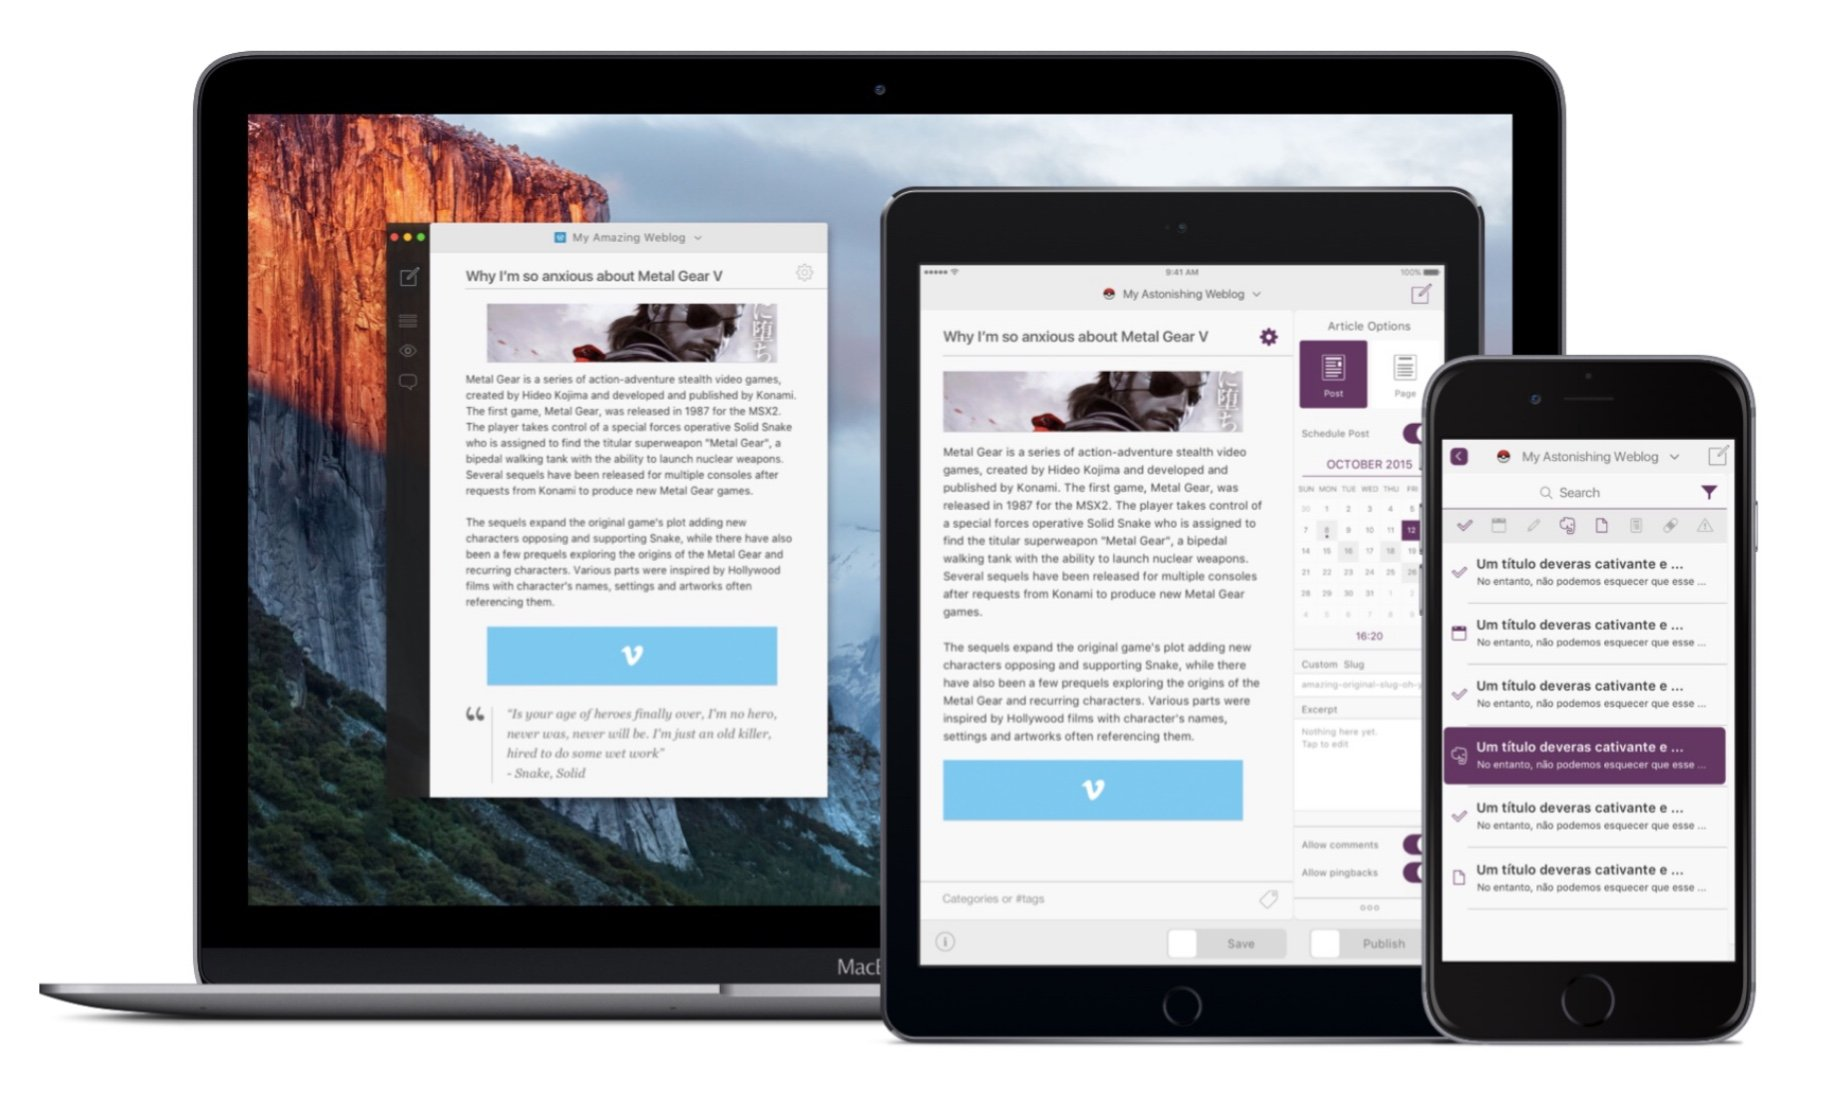 Blogo for iPhone and iPad